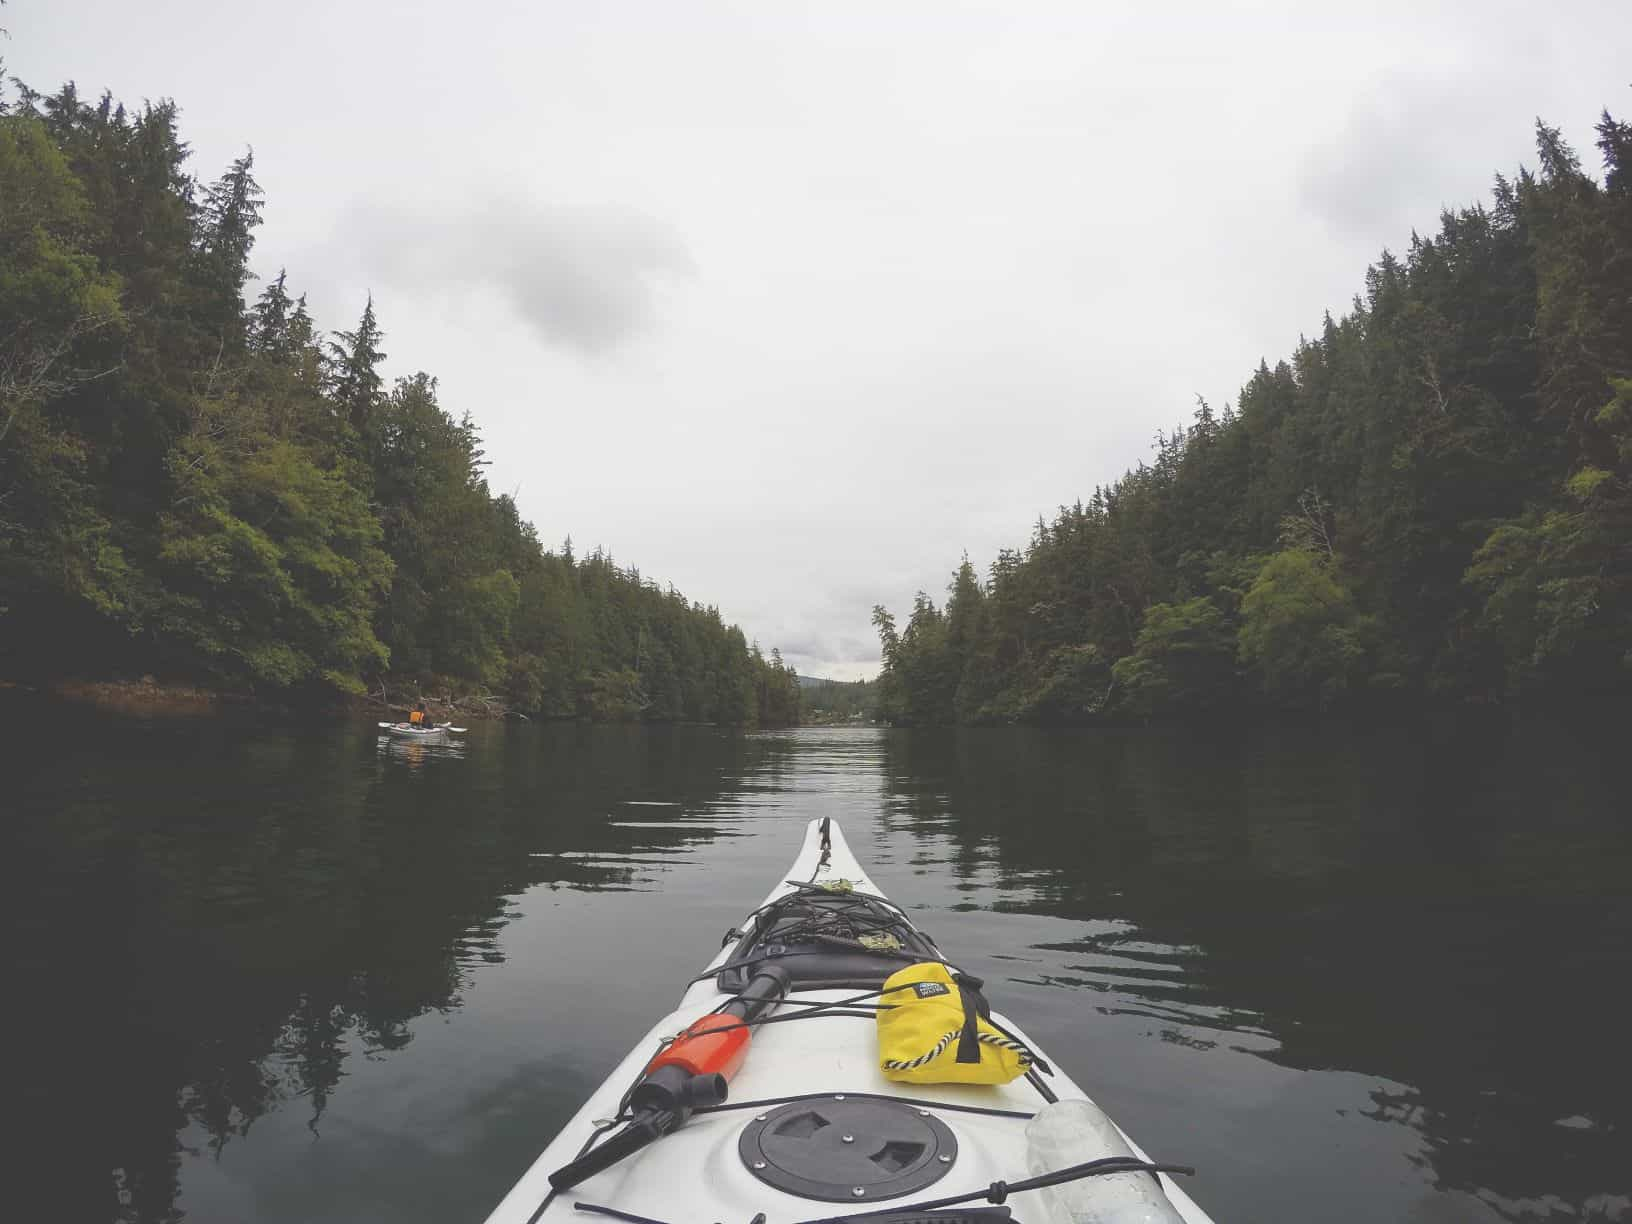 Kayaking apps